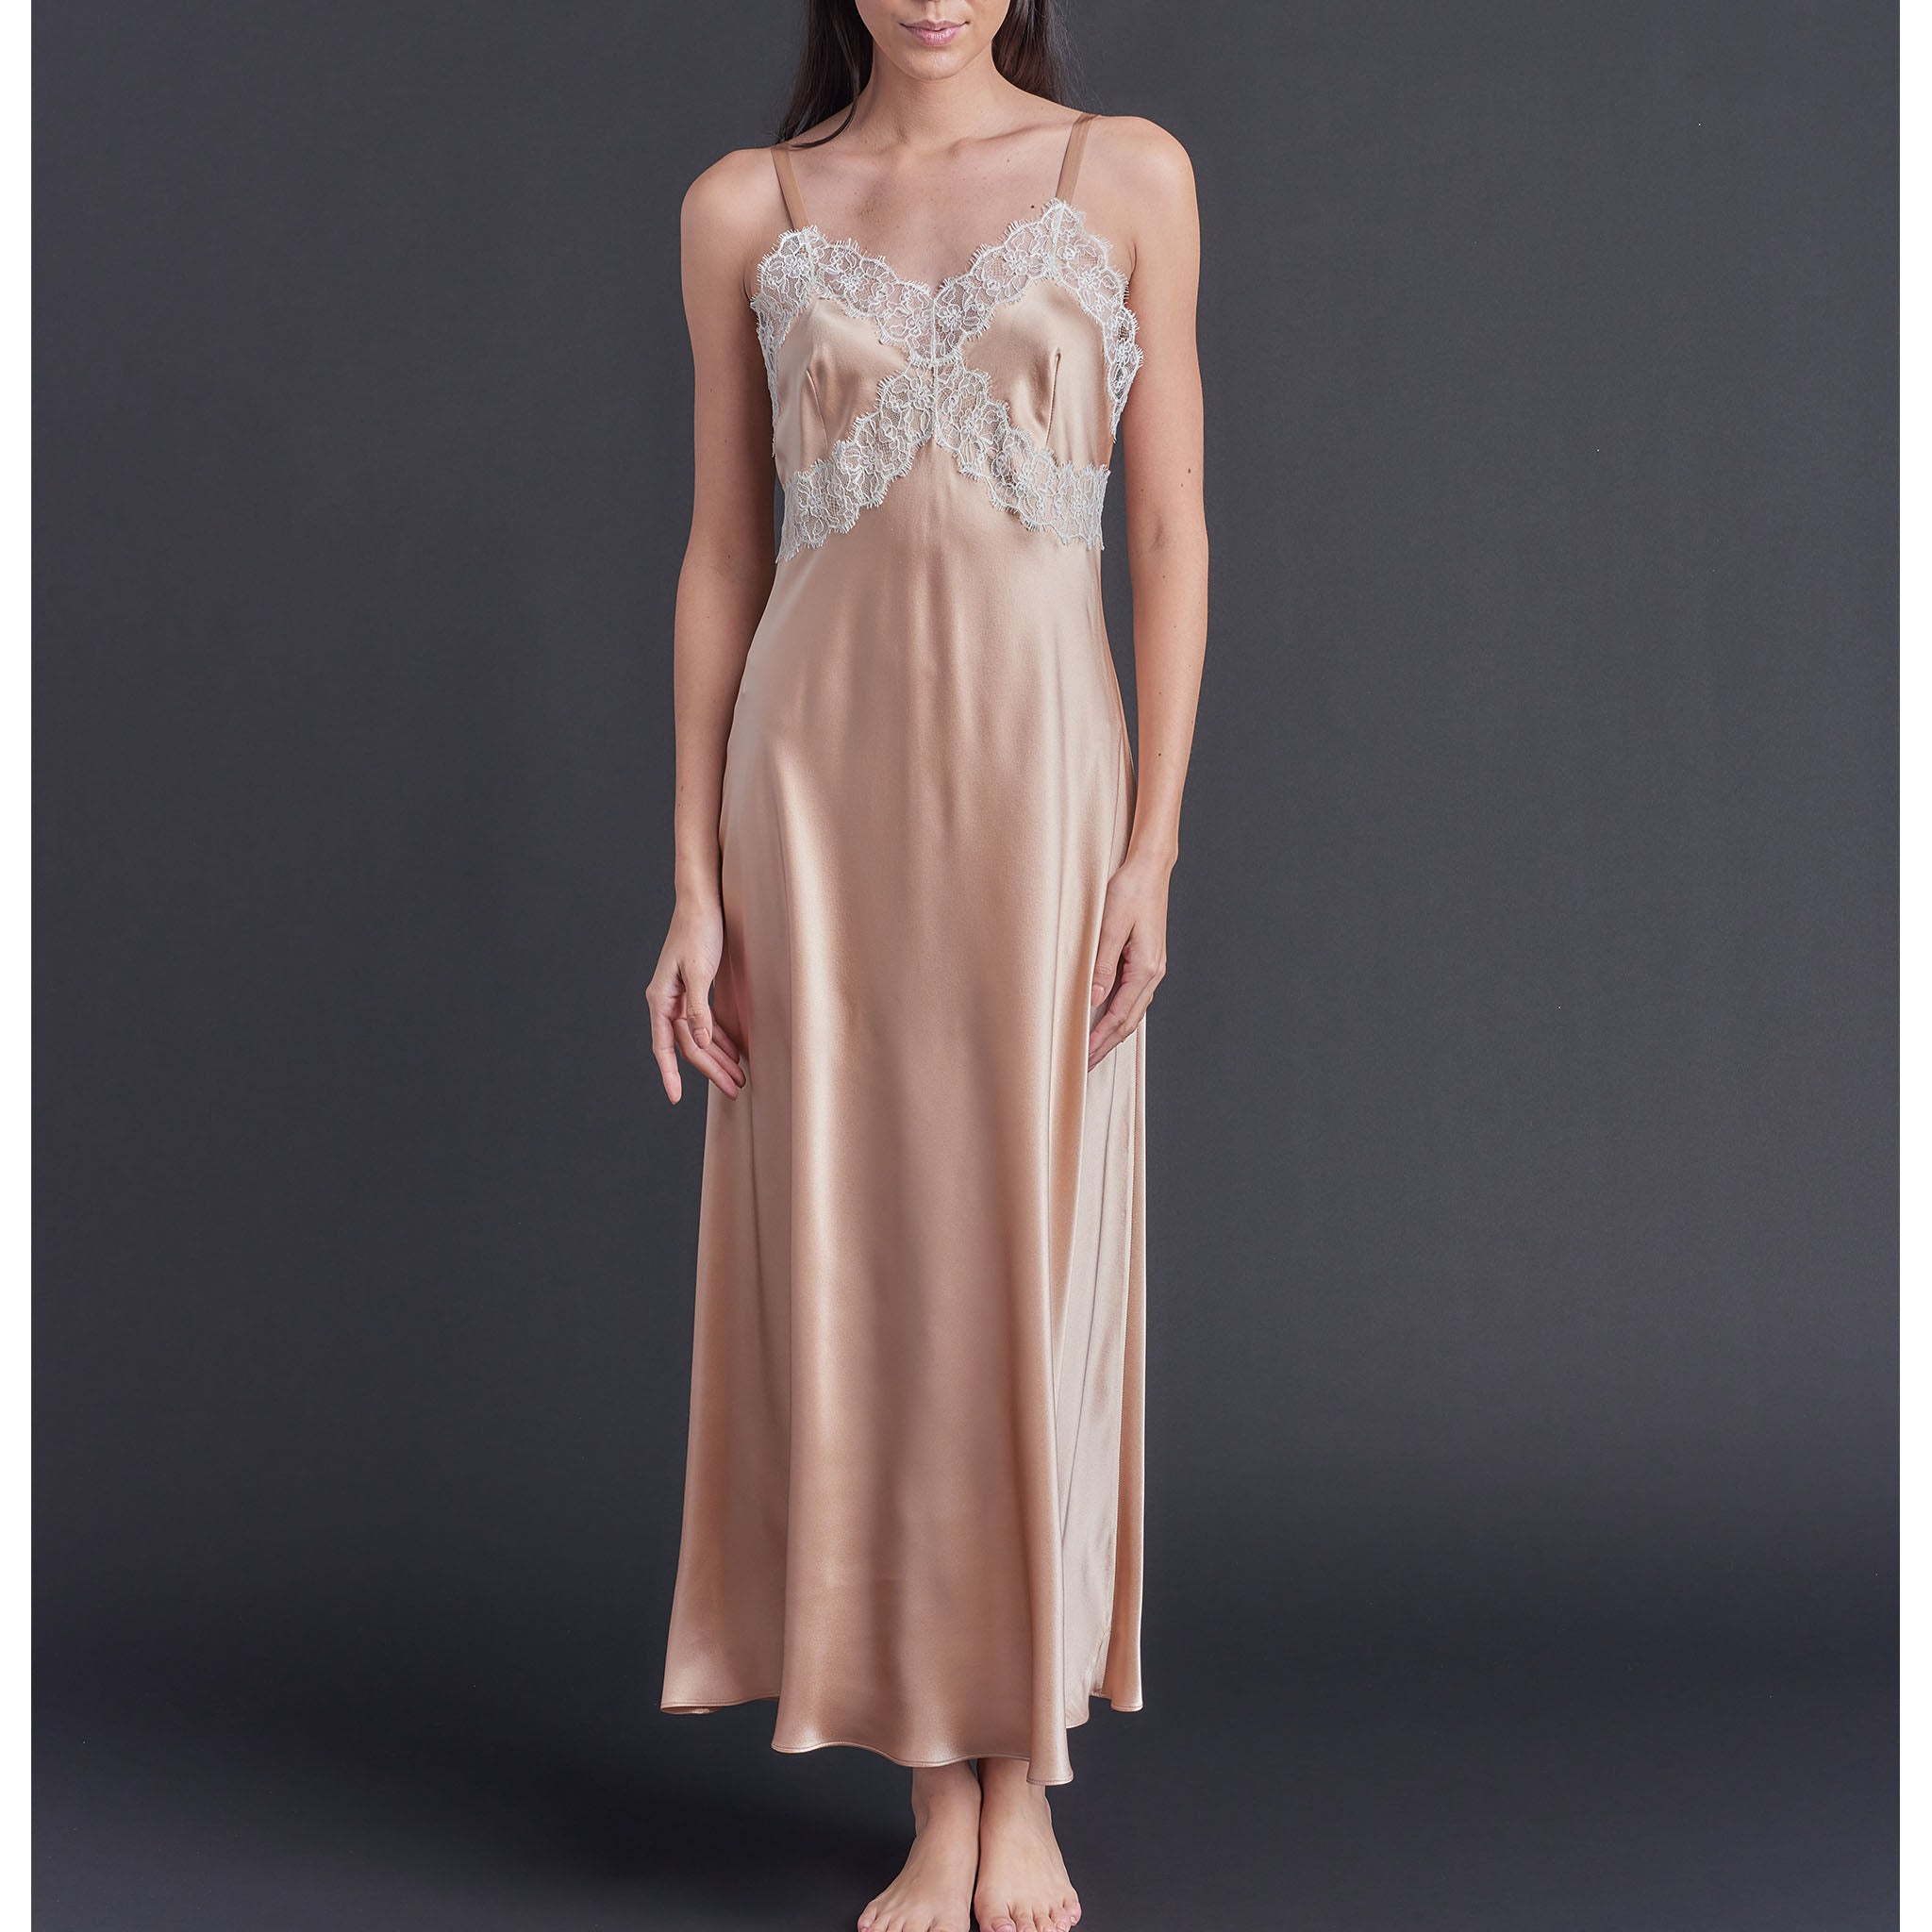 Marlayne Silk Charmeuse Slip in Vintage Blush